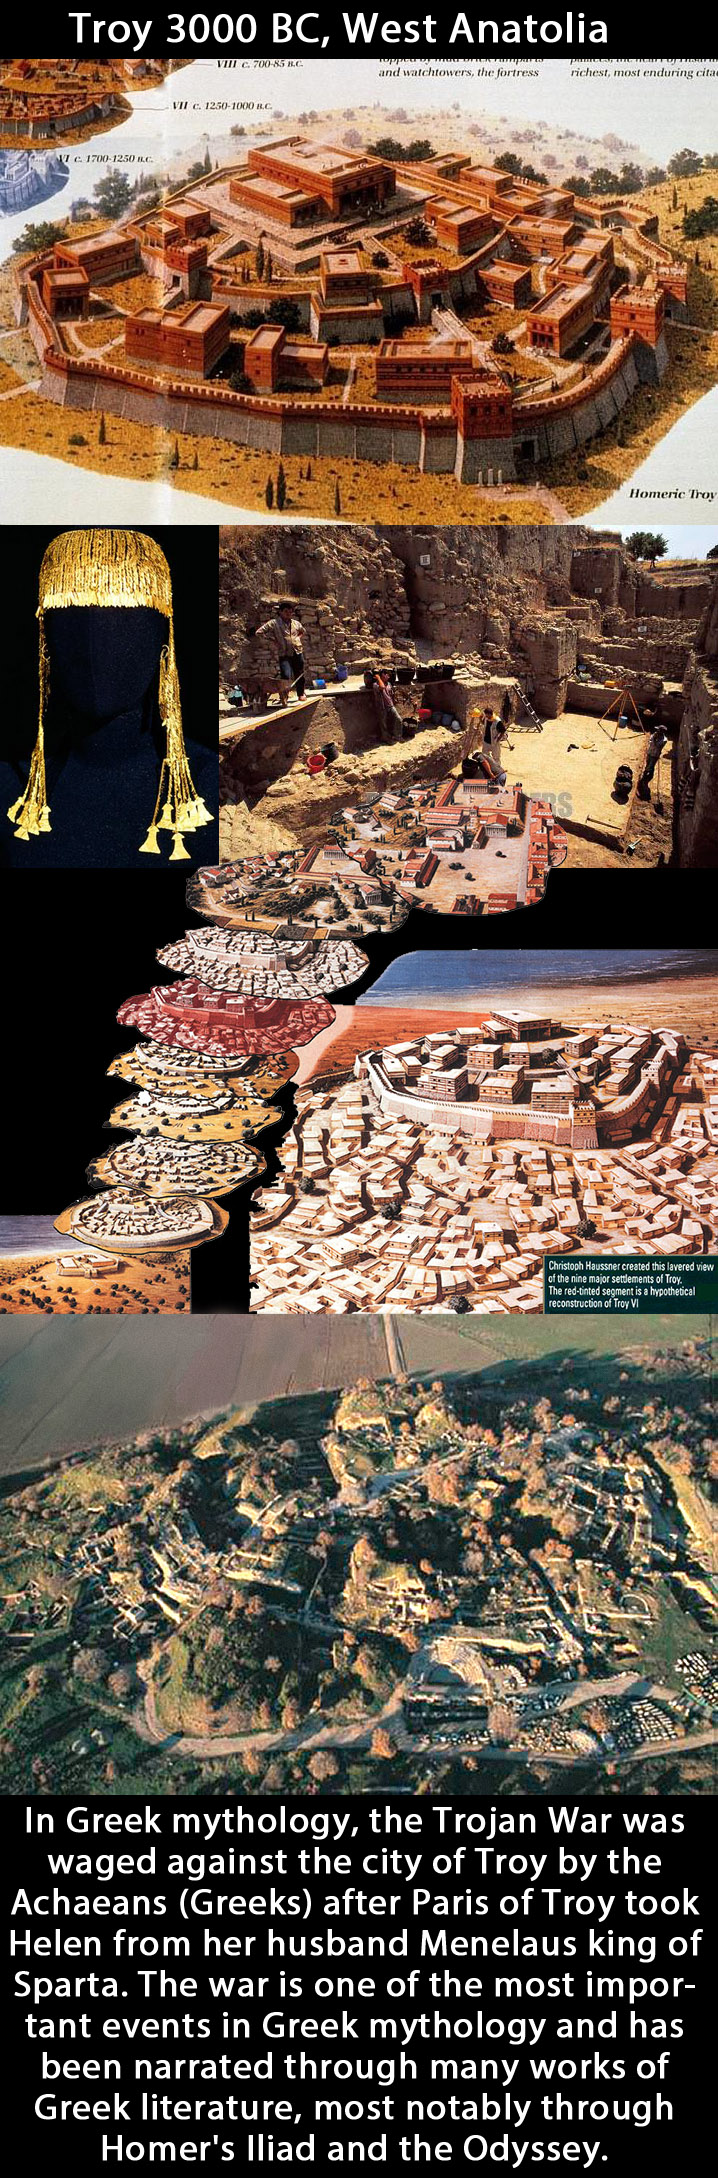 Troy 3000BC - 500AD (Ancient Greek: Τροία, Troia;) was a city, both factual and legendary, in northwest Anatolia, south of the southwest end of the Dardanelles / Hellespont and northwest of Mount Ida. It is best known for being the setting of the Trojan War described in the Greek Epic Cycle and especially in the Iliad, one of the two epic poems attributed to Homer.